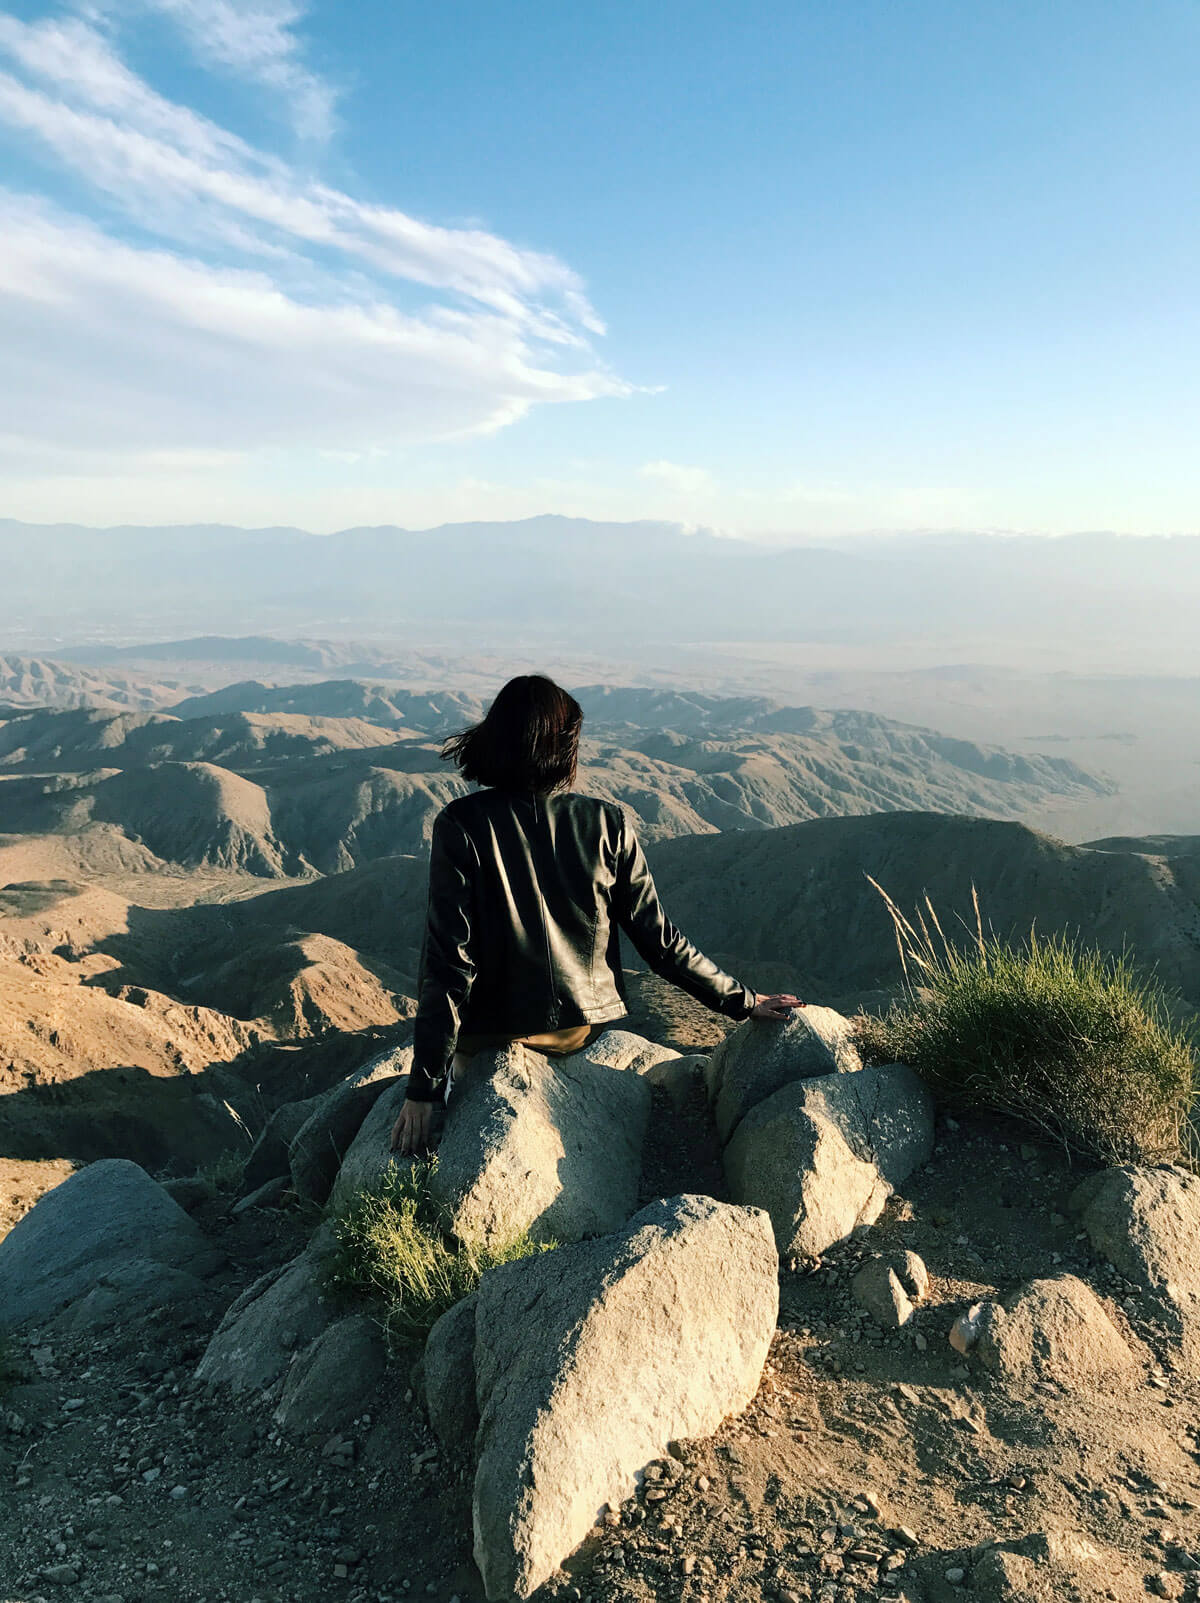 Il mio viaggio in California - Joshua Tree National Park